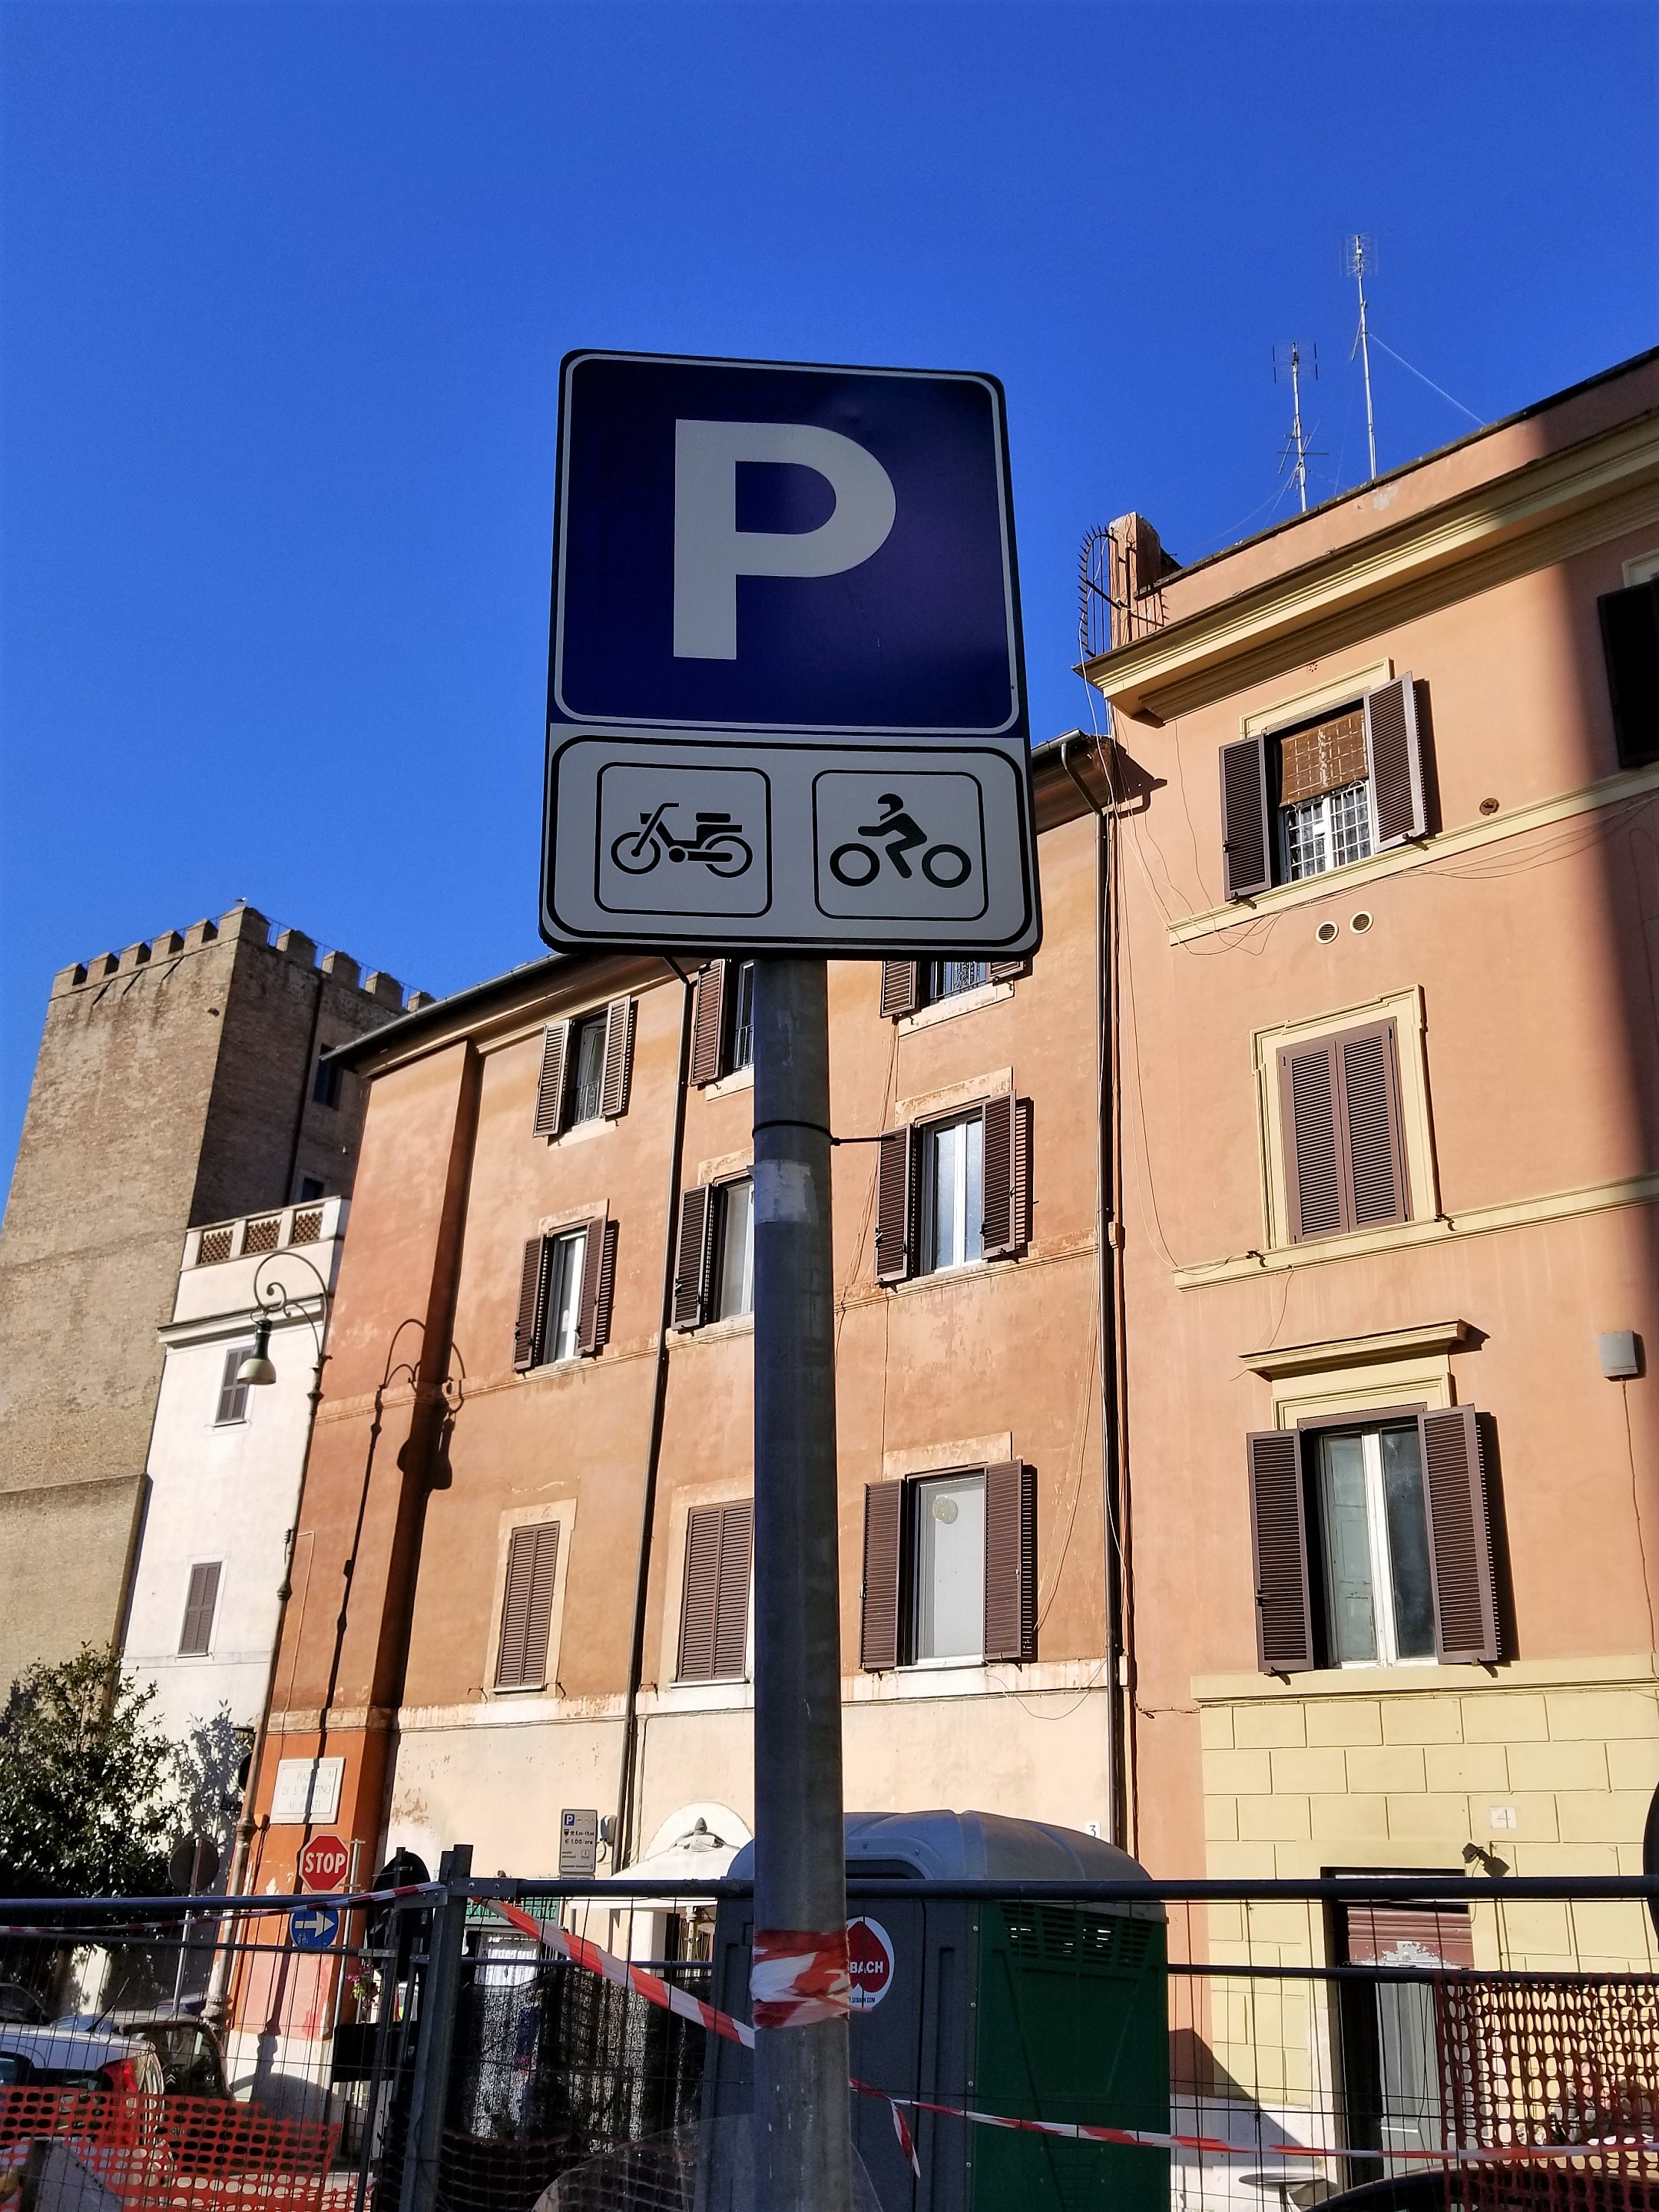 Parking sign in Rome, Italy. ouritalianjourney.com